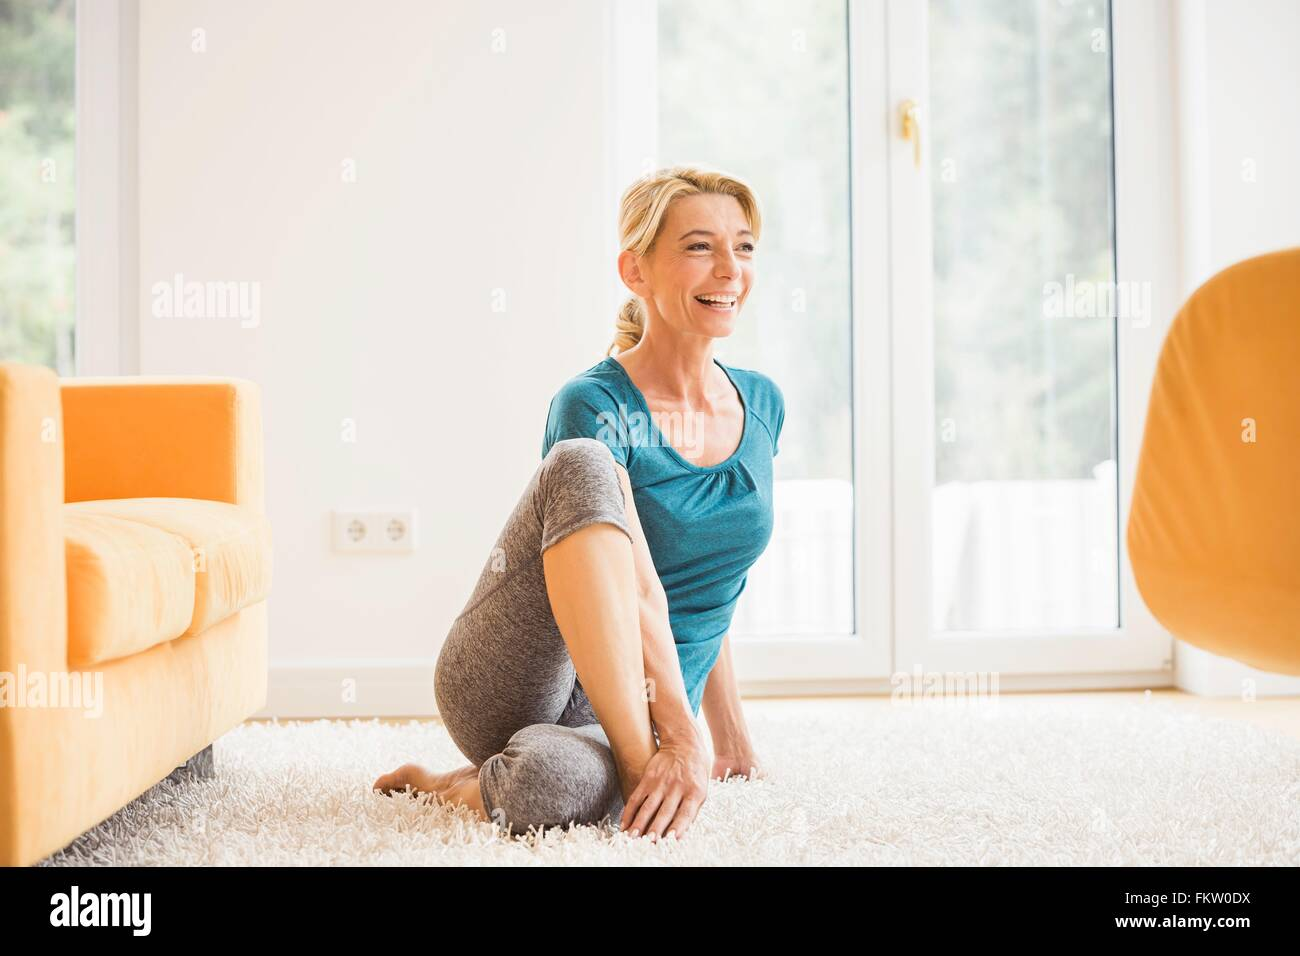 Mature woman doing stretch exercise in living room floor - Stock Image